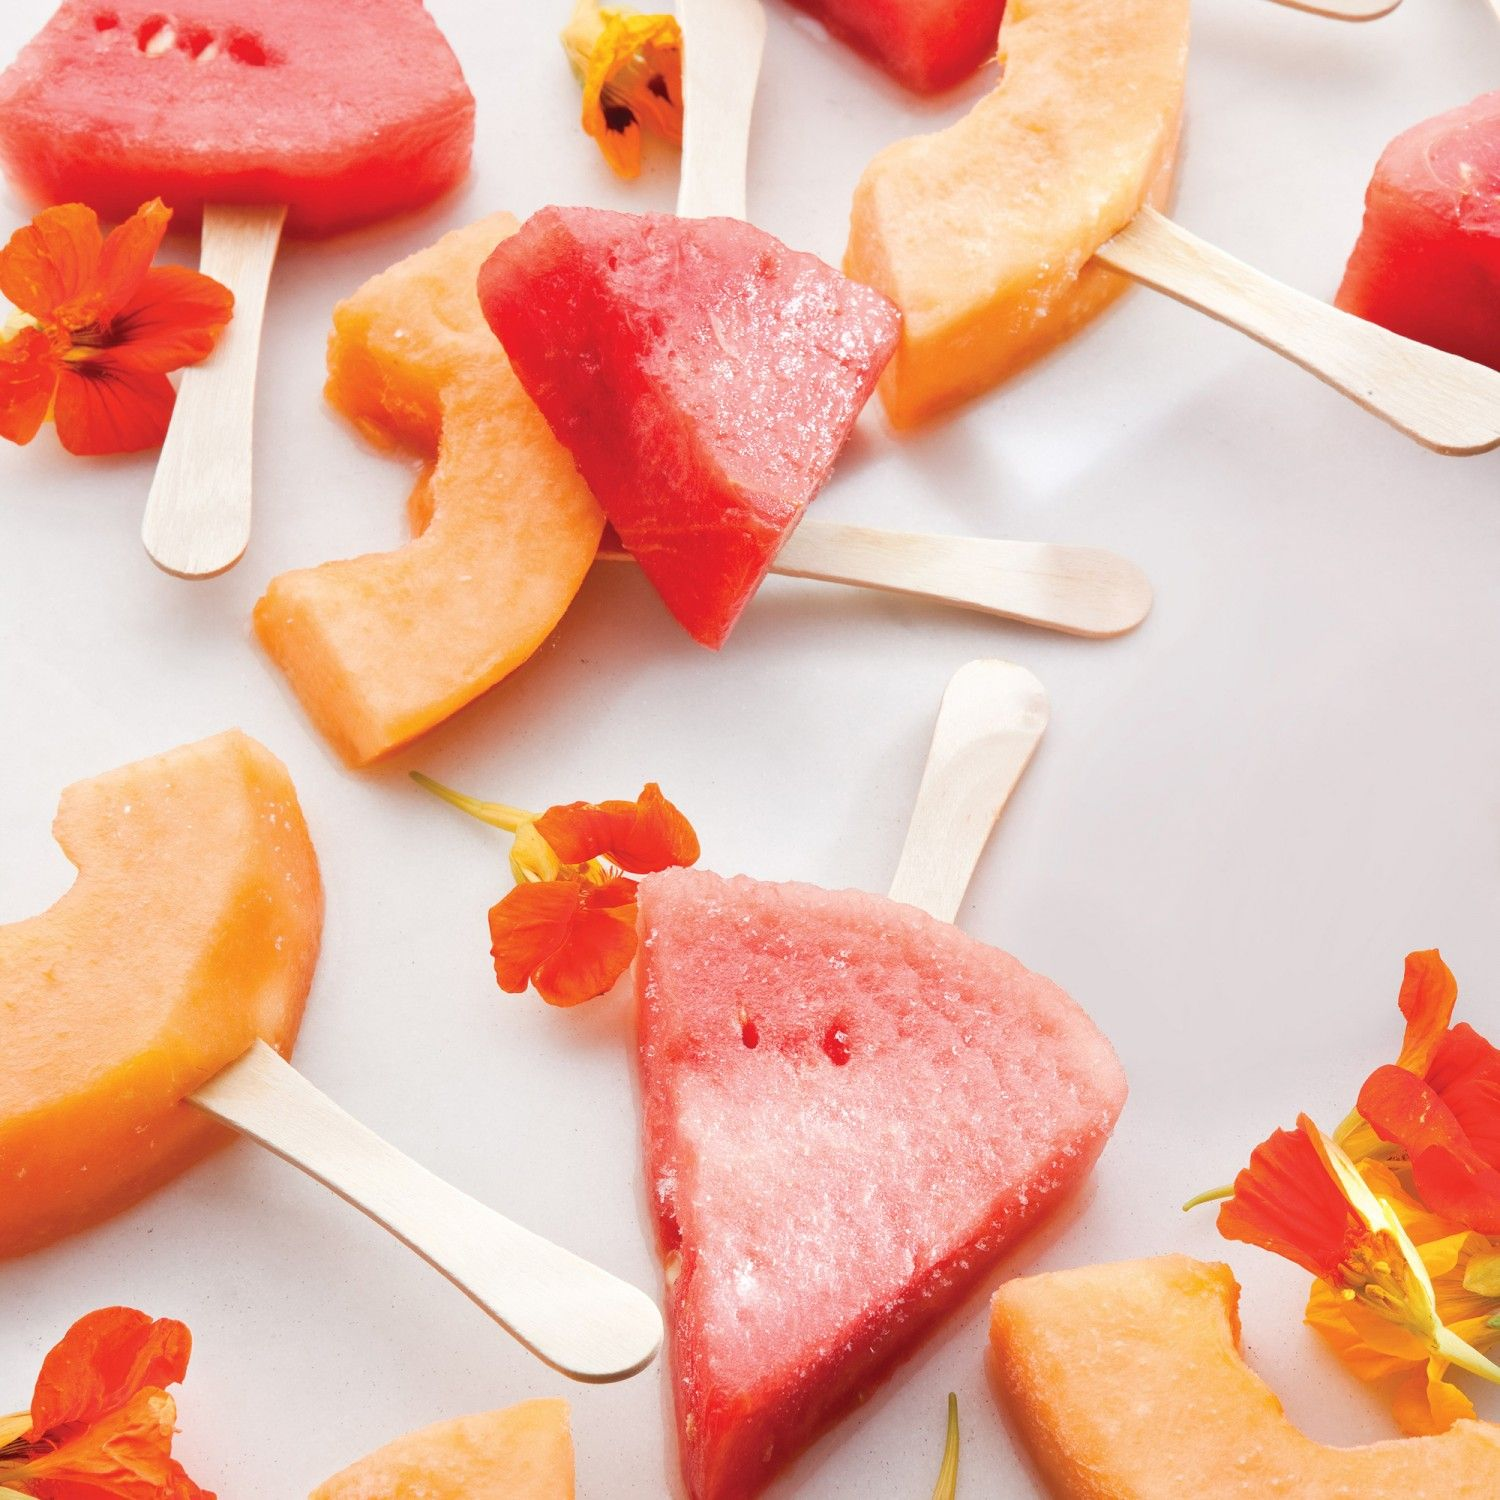 These frozen melon-margarita pops are tangy hand-held treats that make you feel grown-up and kidlike at the same time. Dip juicy pieces of melons in…